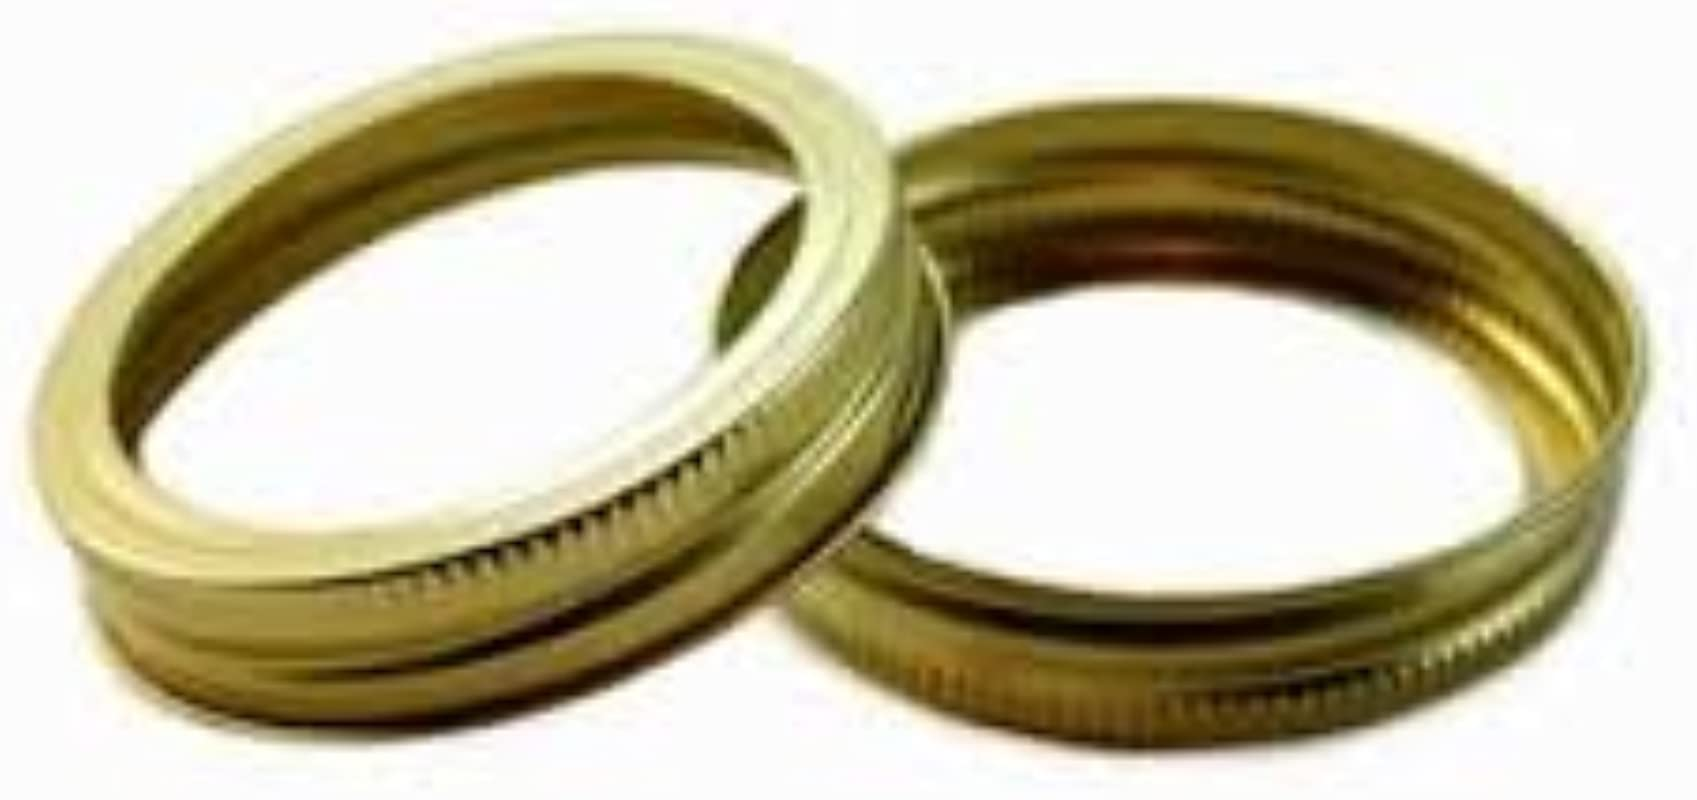 Generic Made By Ball Regular Mason Jar Canning Gold Bands Or Rings 12 Bands 1 Dozen 70mm Size Bands Only No Lids Bulk